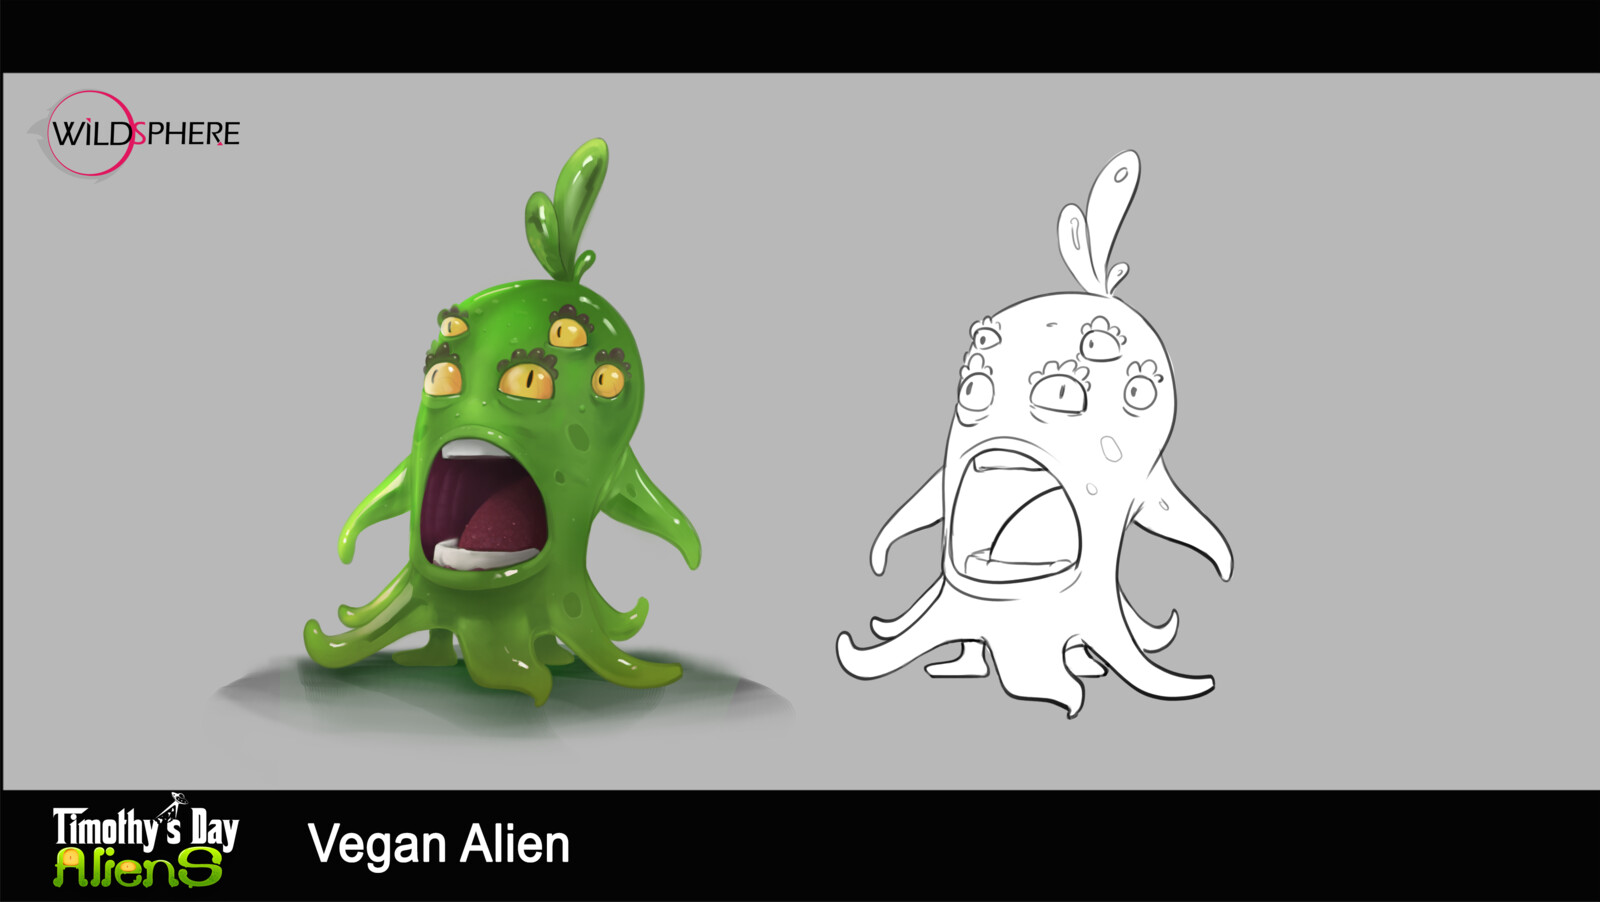 Vegan Alien